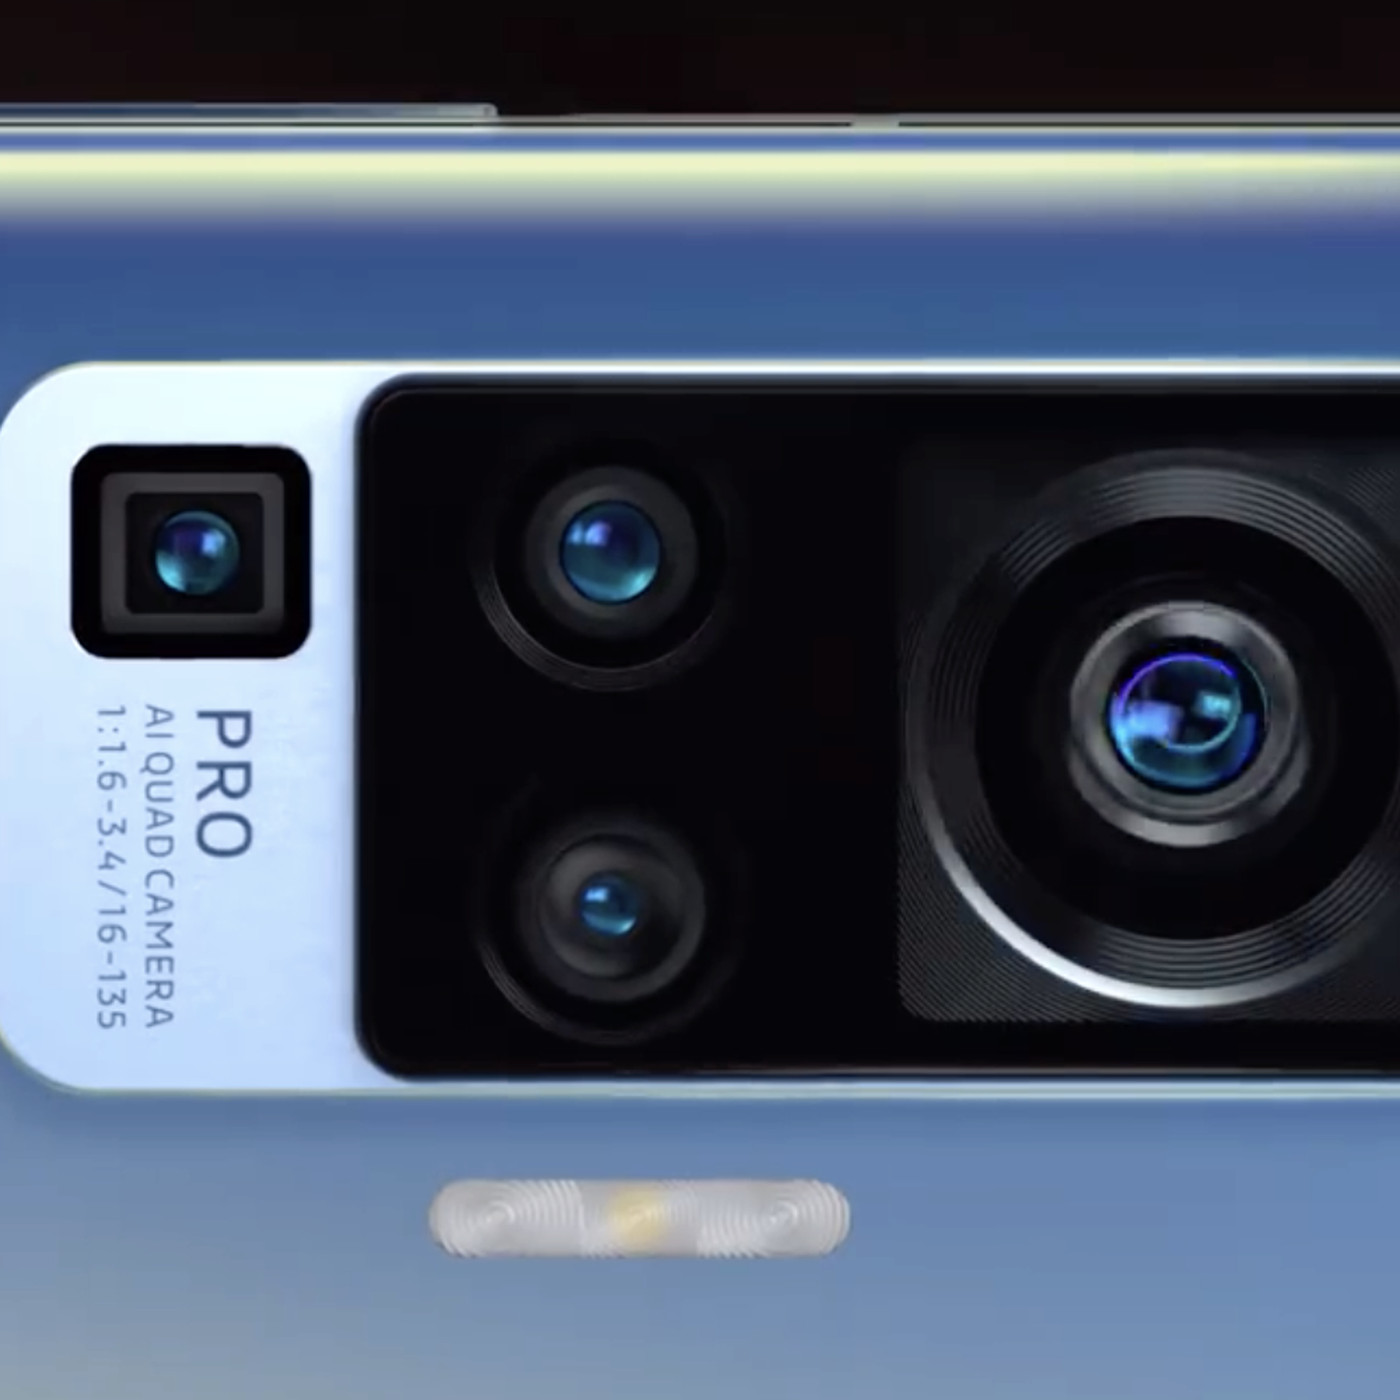 Vivo S Next Flagship Has A Giant Gimbal Style Camera Lens The Verge